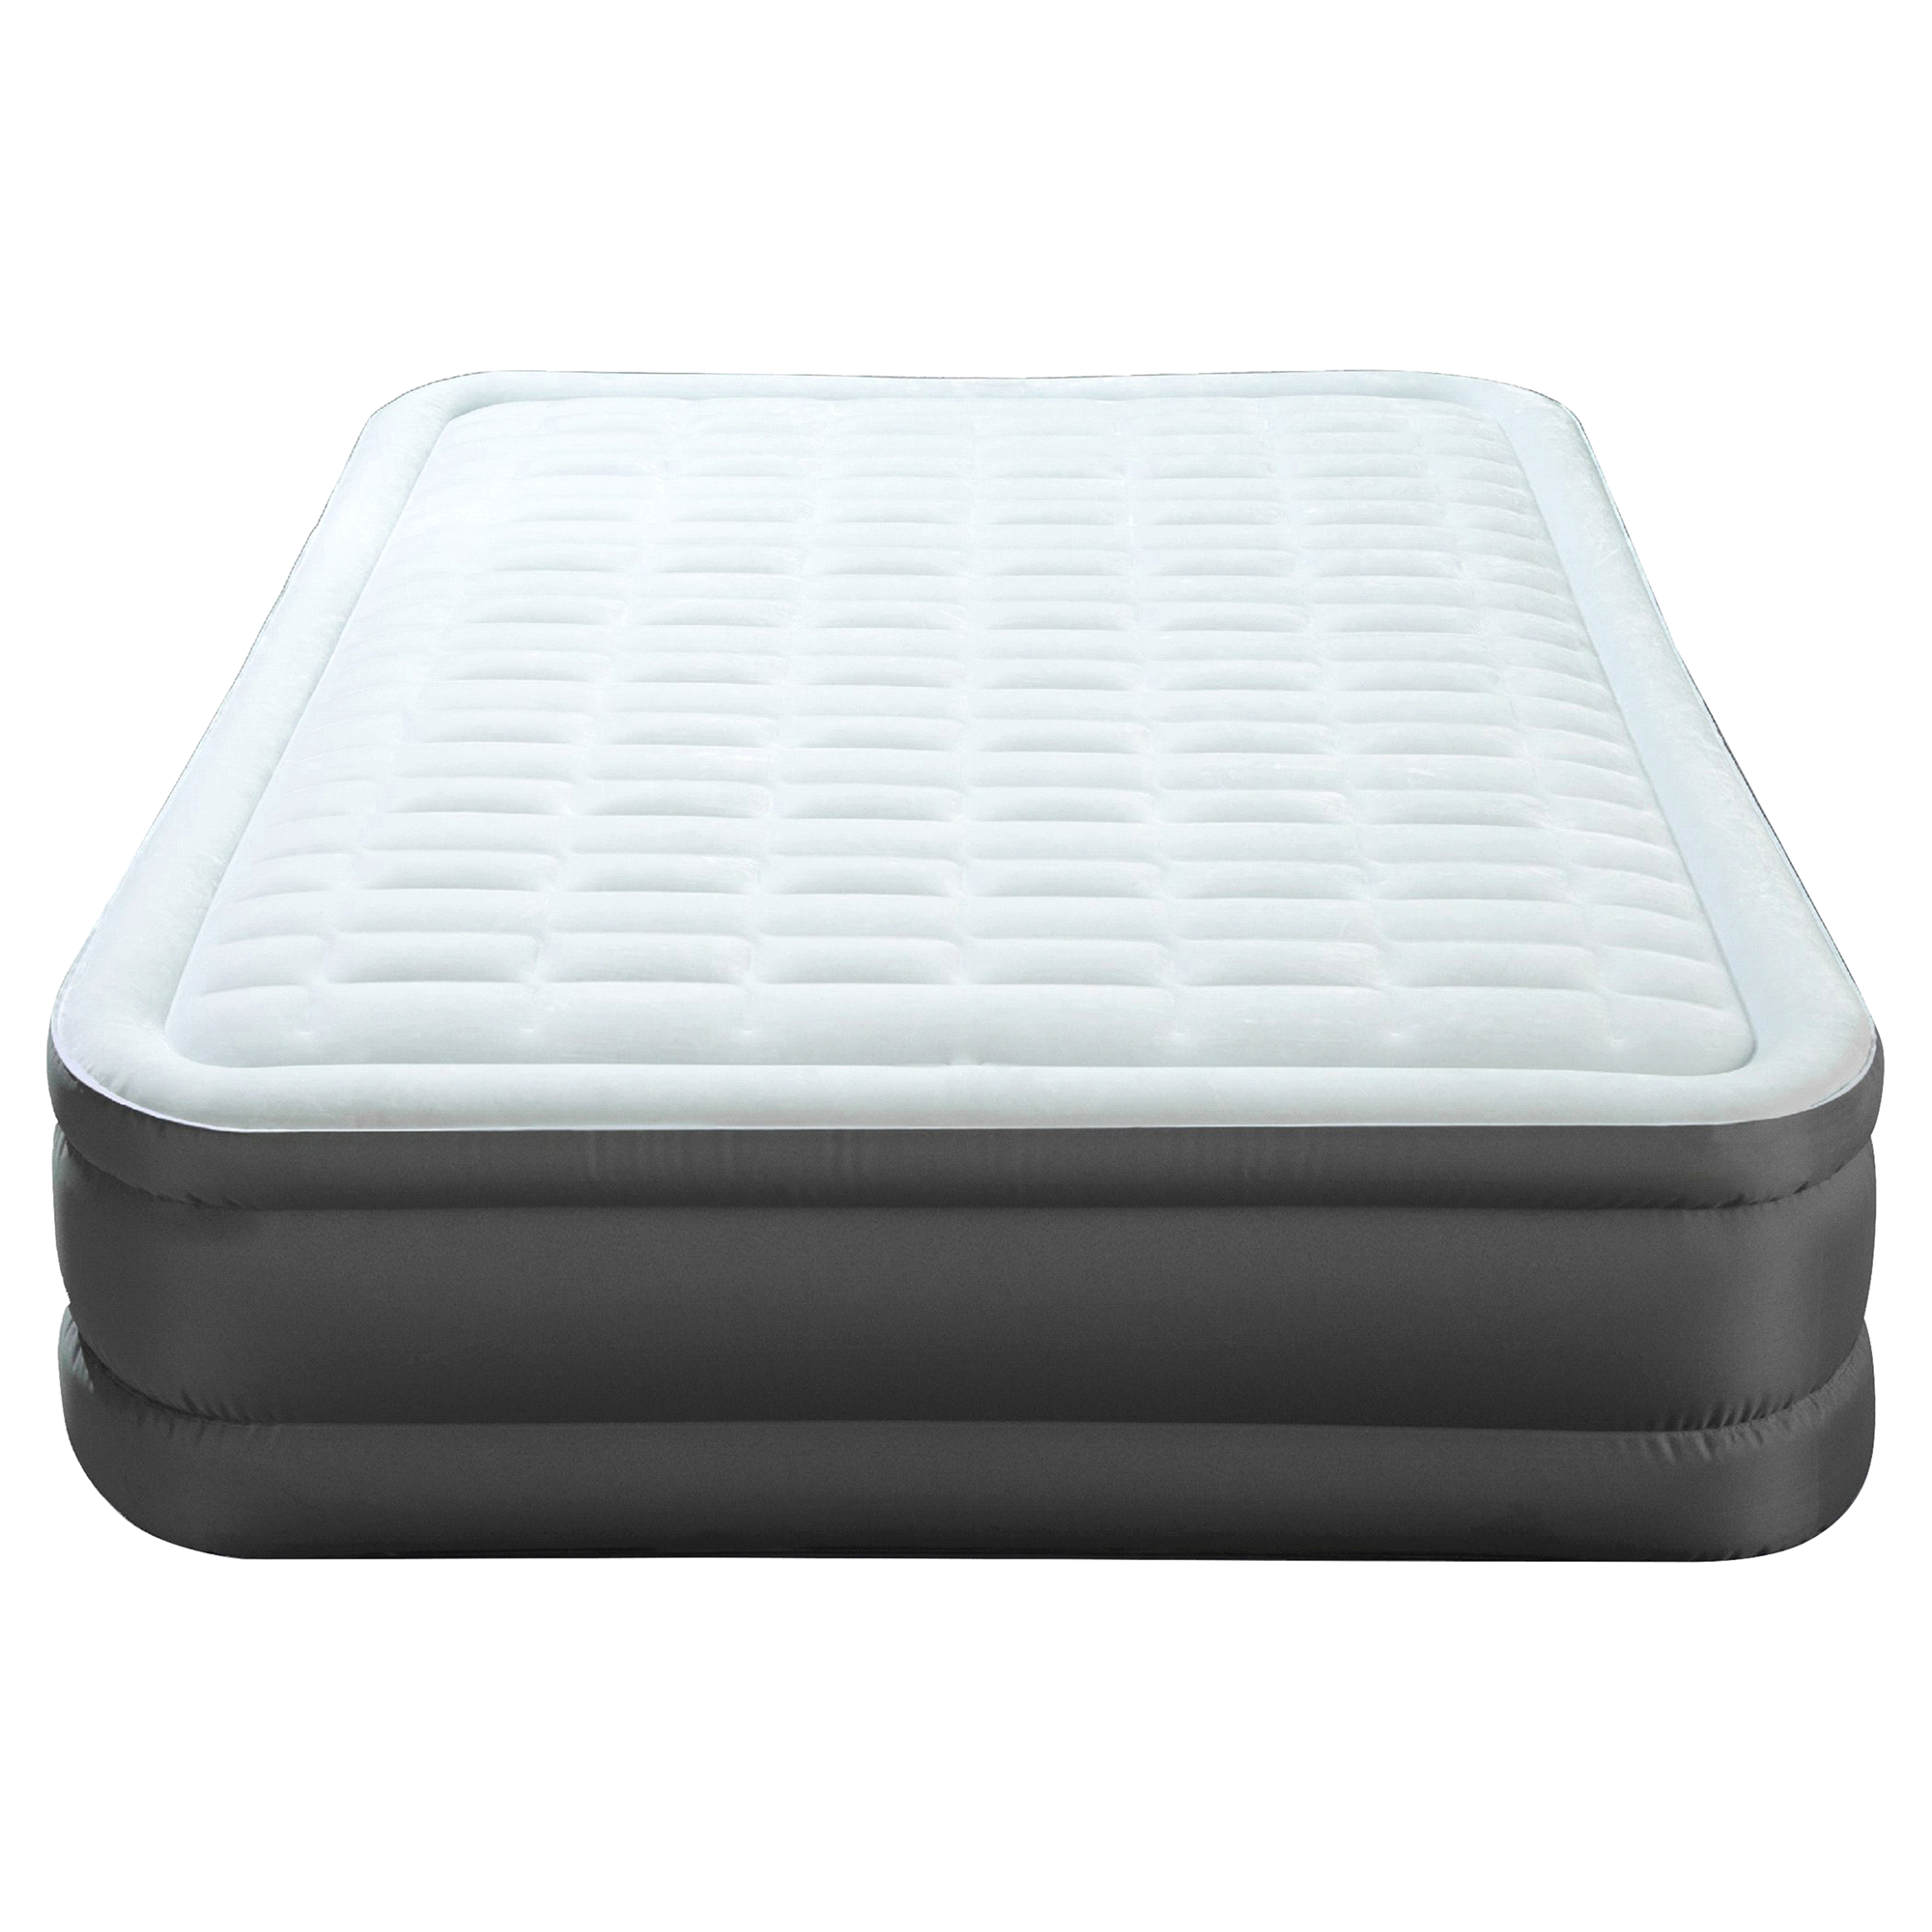 airbeds - Airbeds